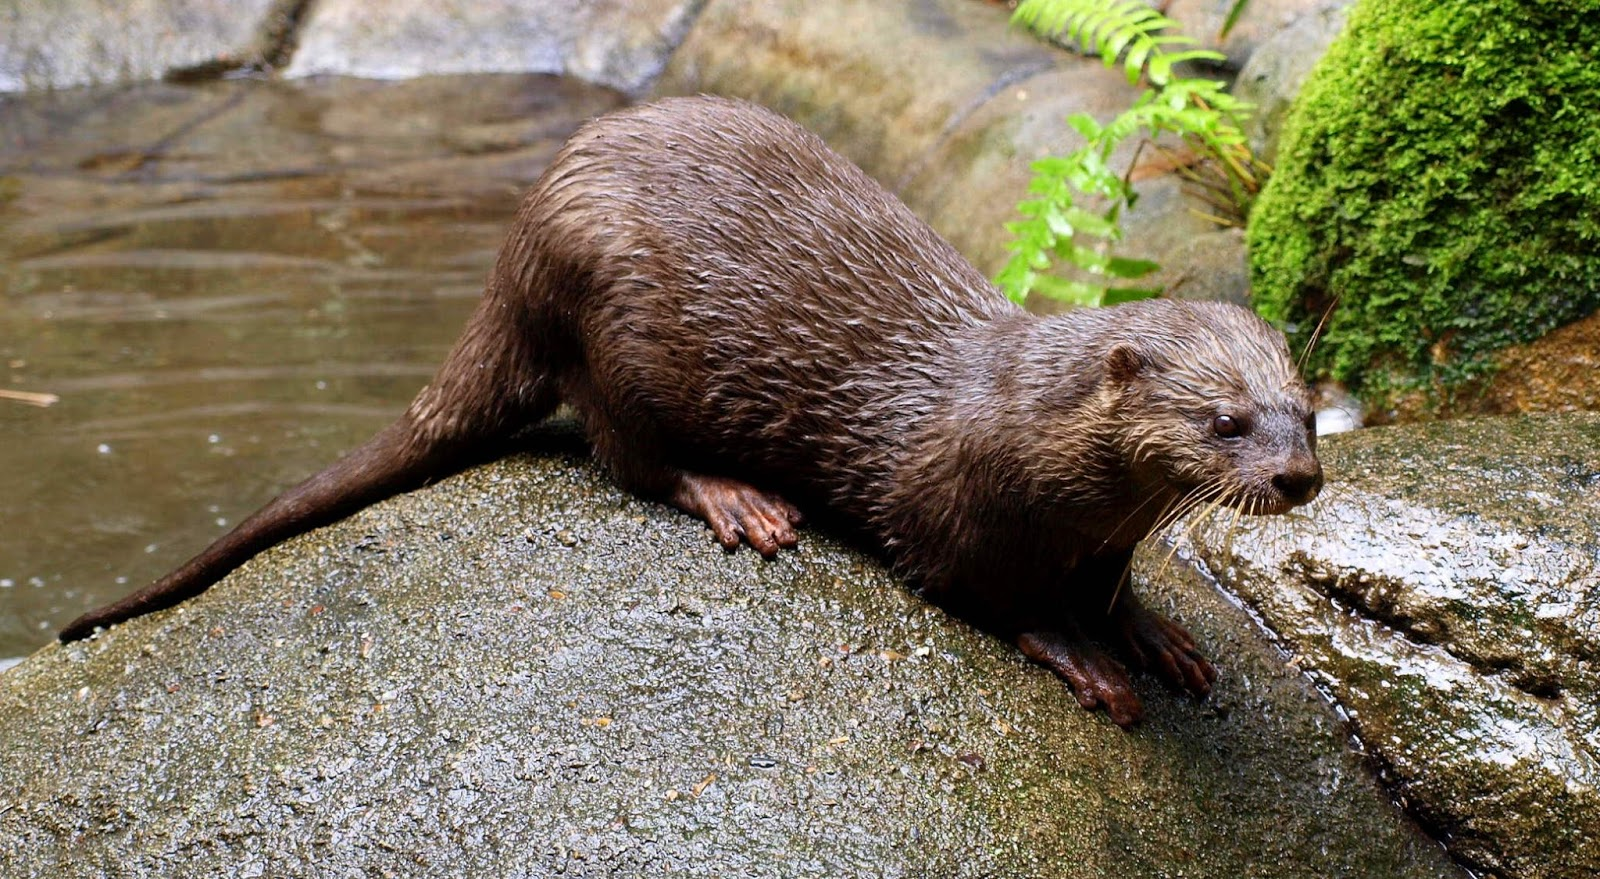 Pet Otter Australia Twinning Around Australia May 19 Australia Zoo With Comments By